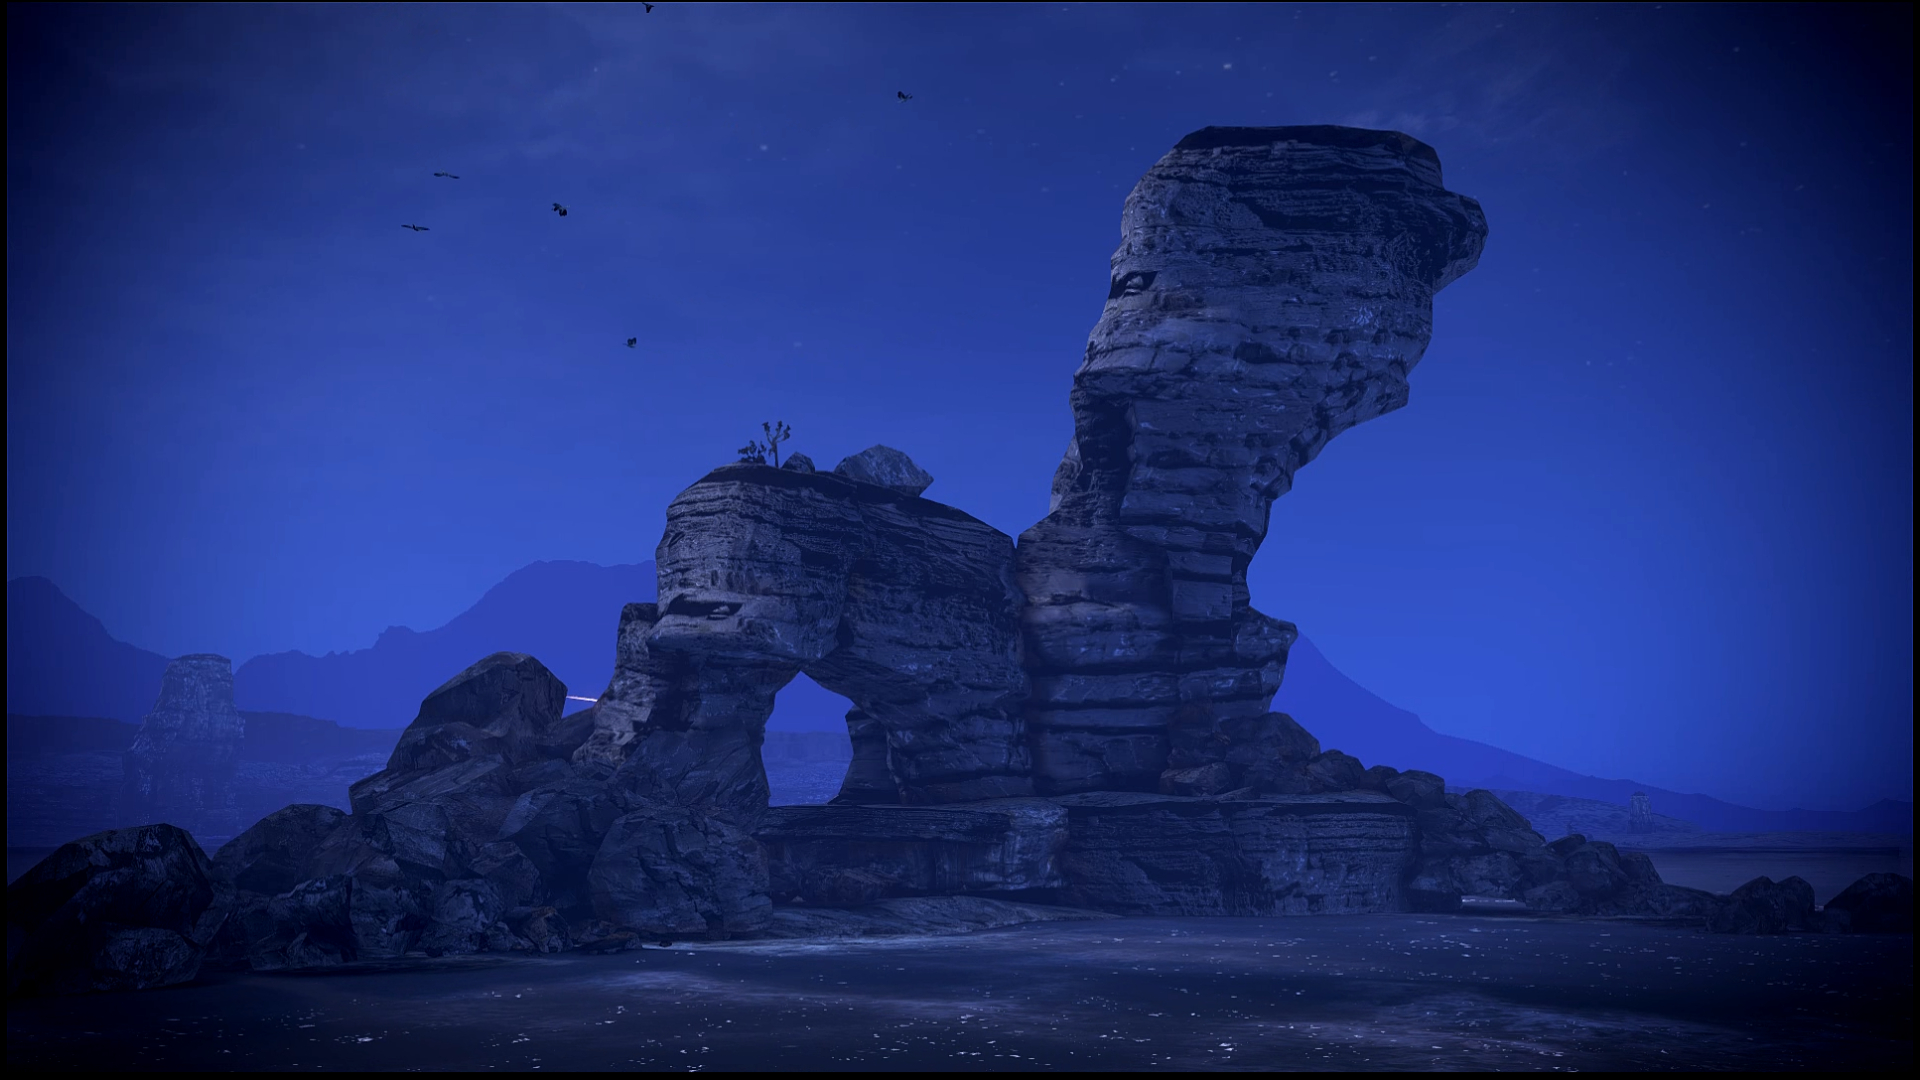 Mass Effect 3 Rannoch Dreamscene by droot1986